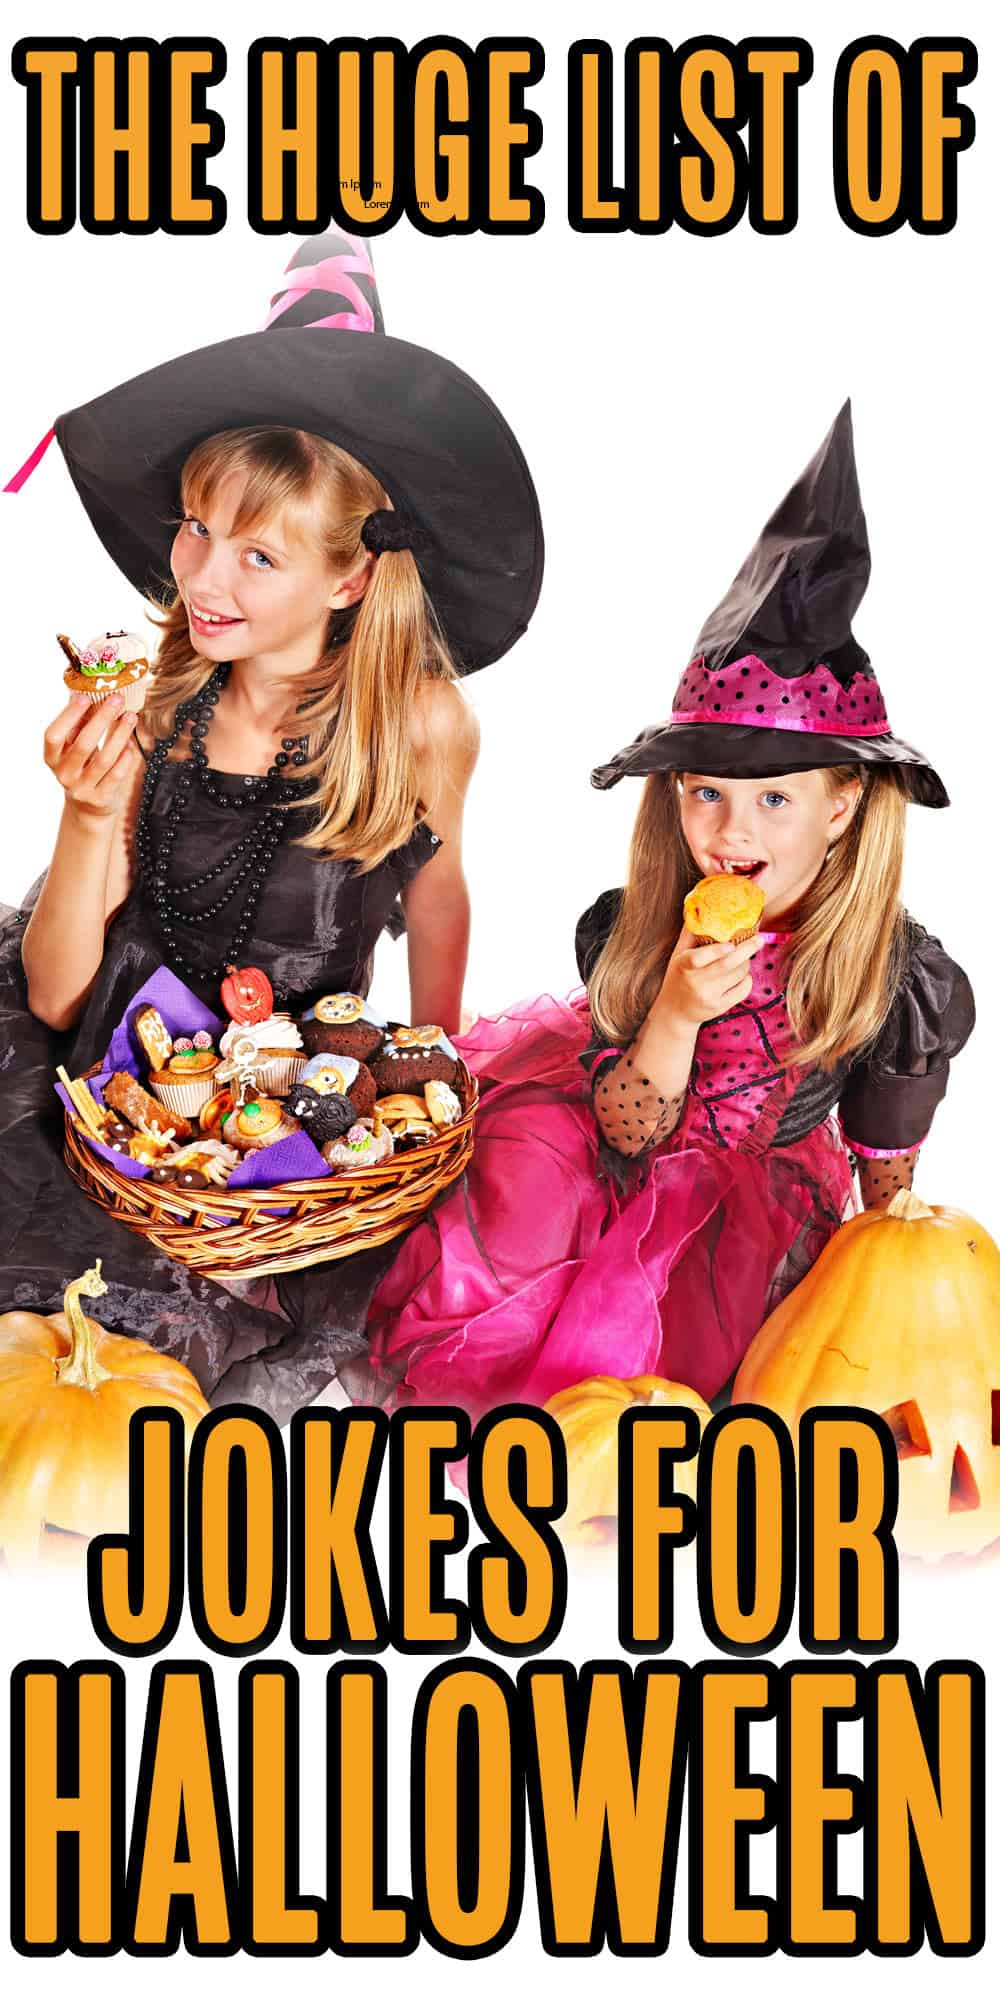 funny halloween jokes - girls in costume with halloween candy